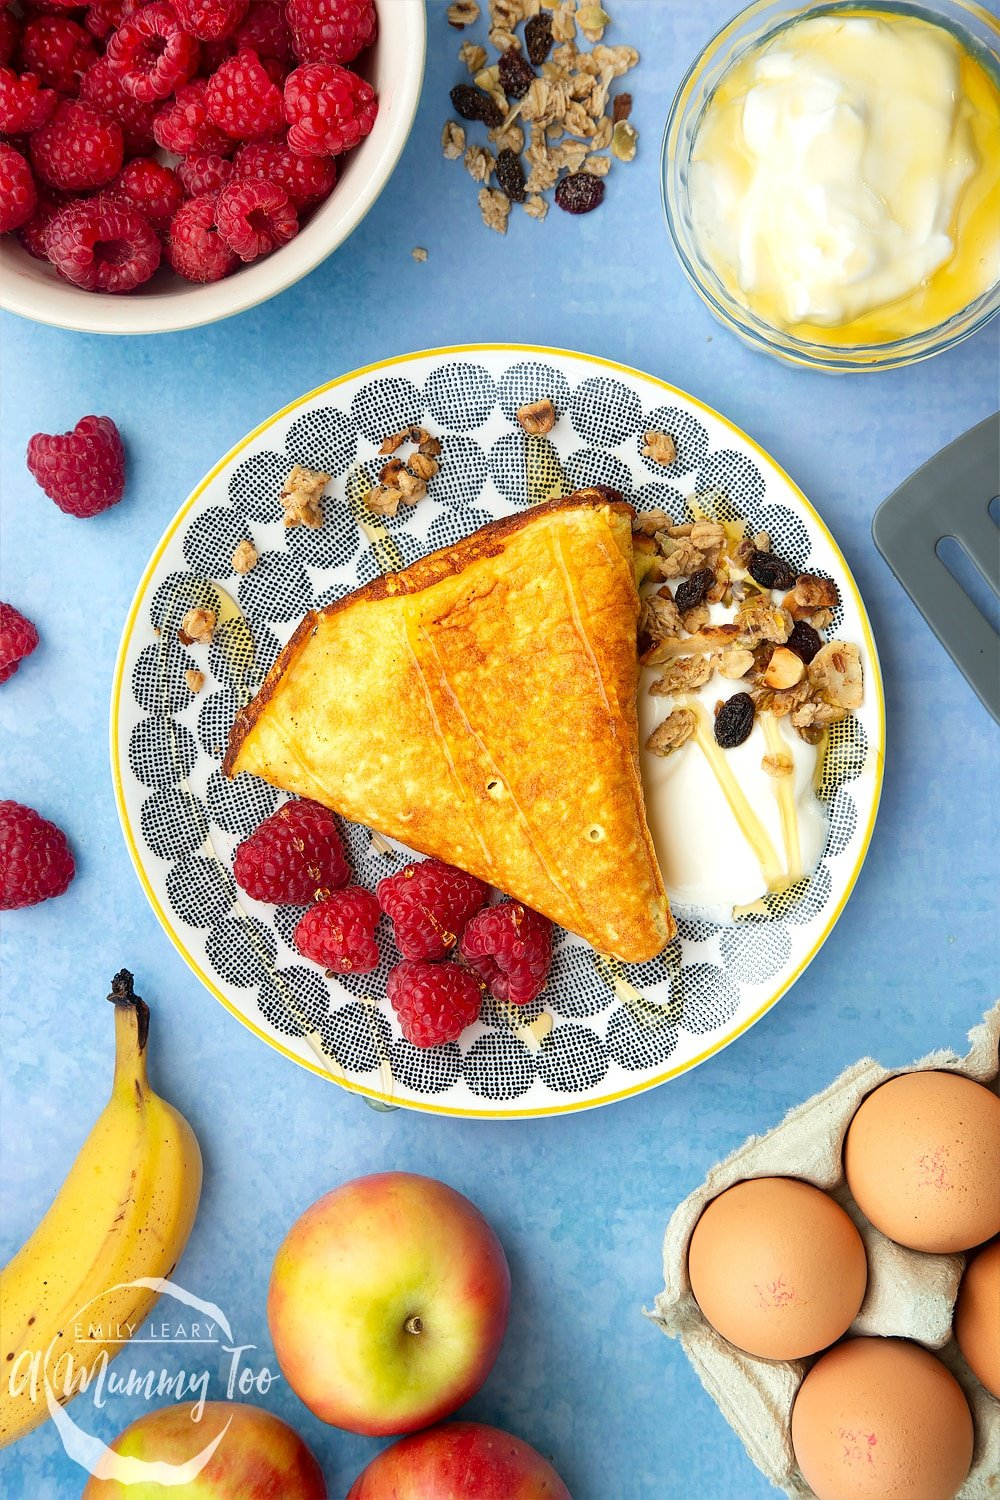 Sweet breakfast omelette on a plate with granola, yogurt and raspberries, drizzled with honey